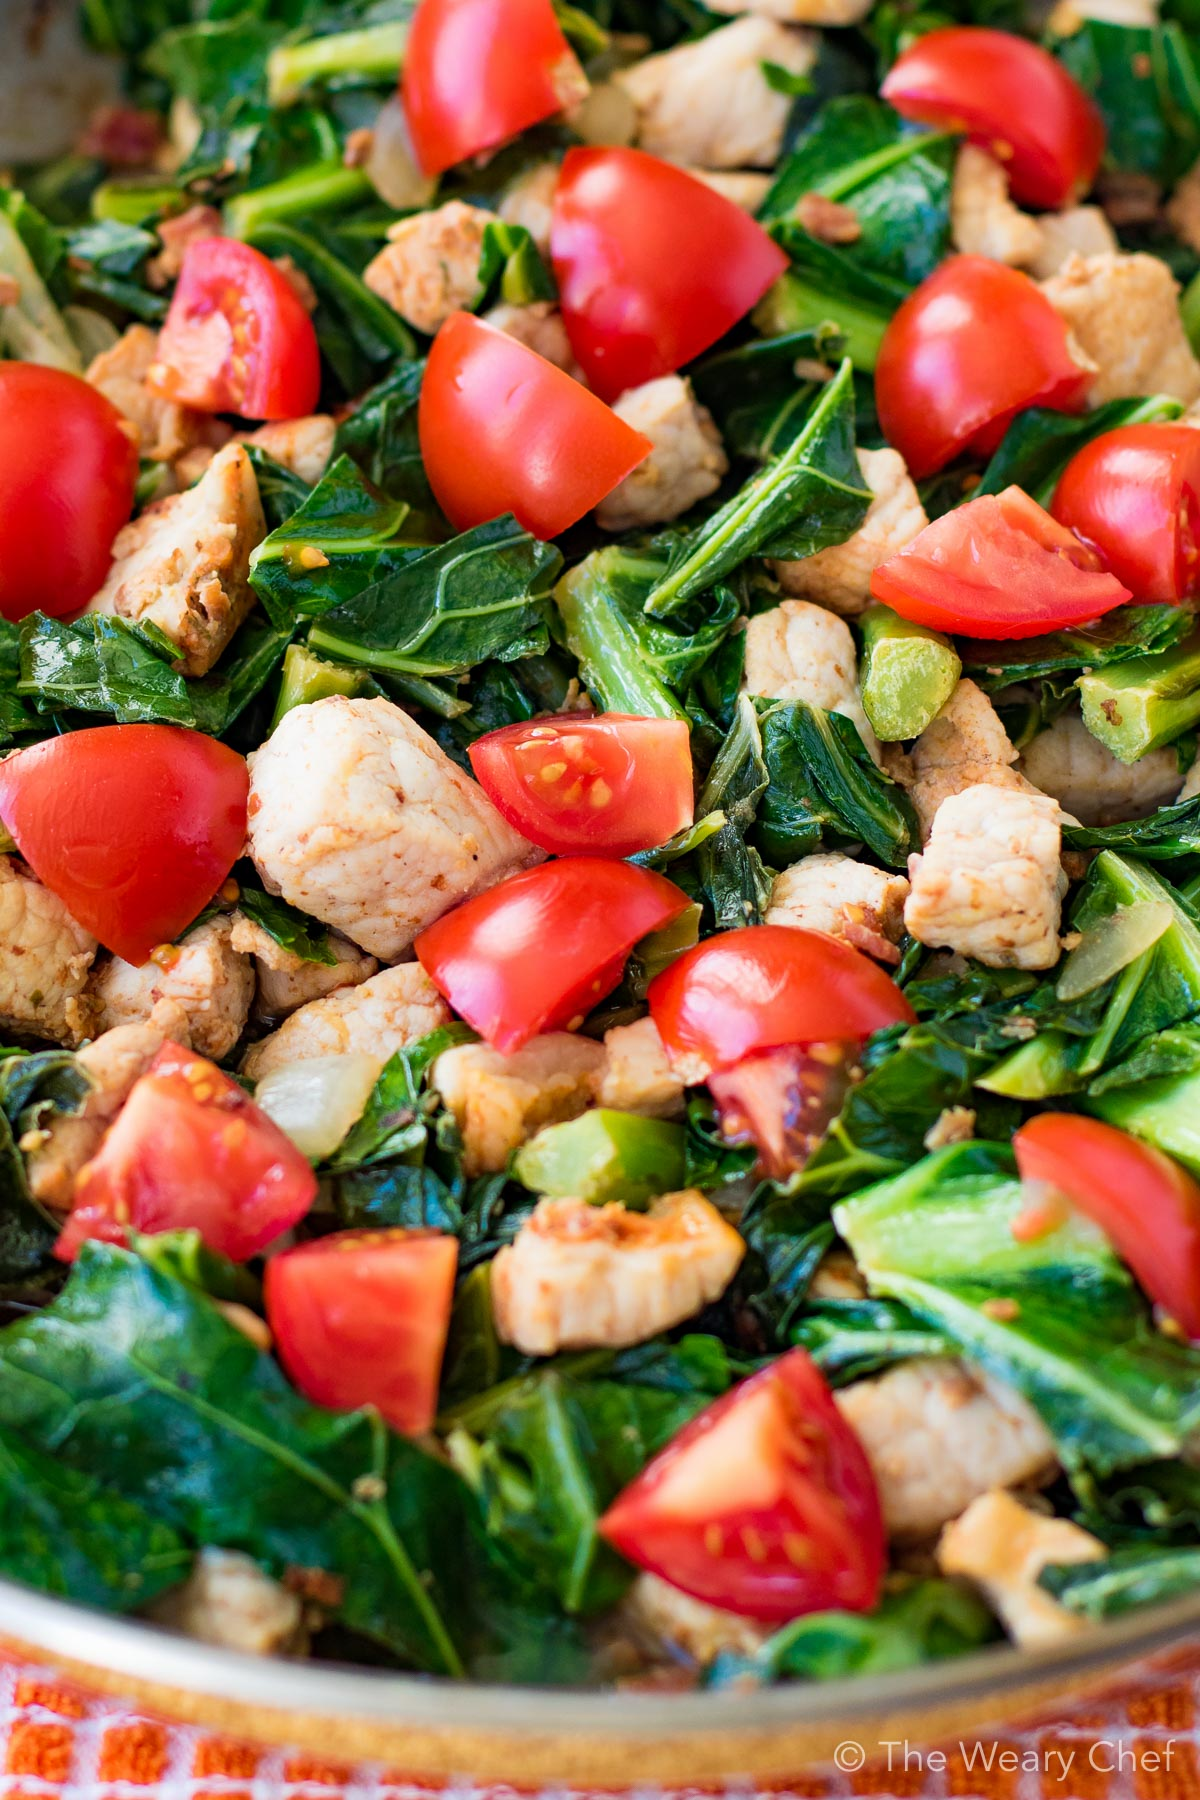 Dive right in! You'll love this healthy, quick and delicious pork and greens stir fry for dinner!